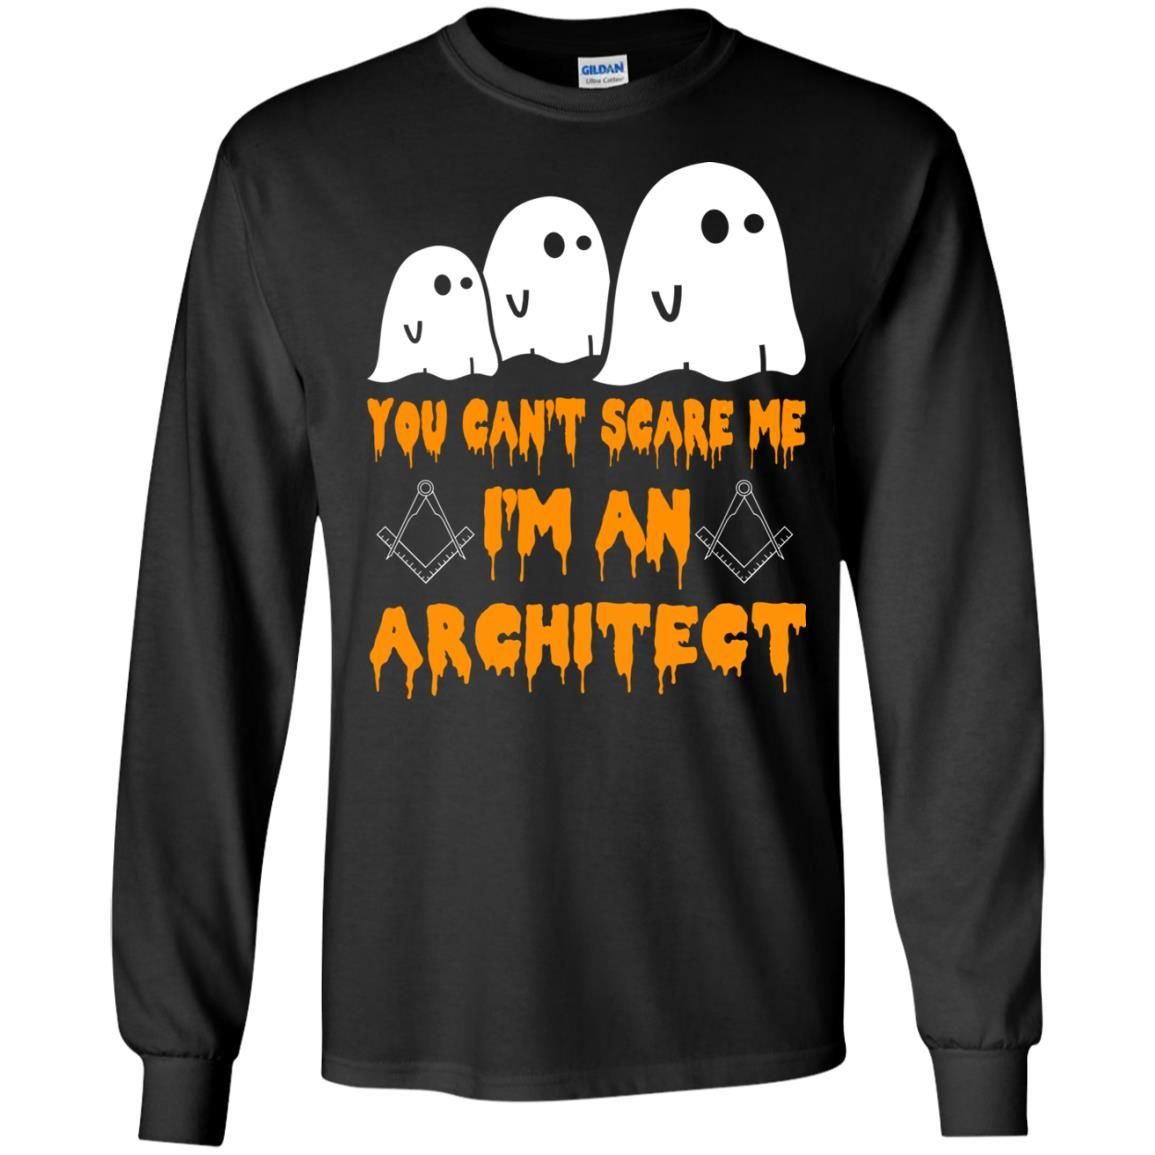 image 517 - You can't scare me I'm an Architect shirt, hoodie, tank